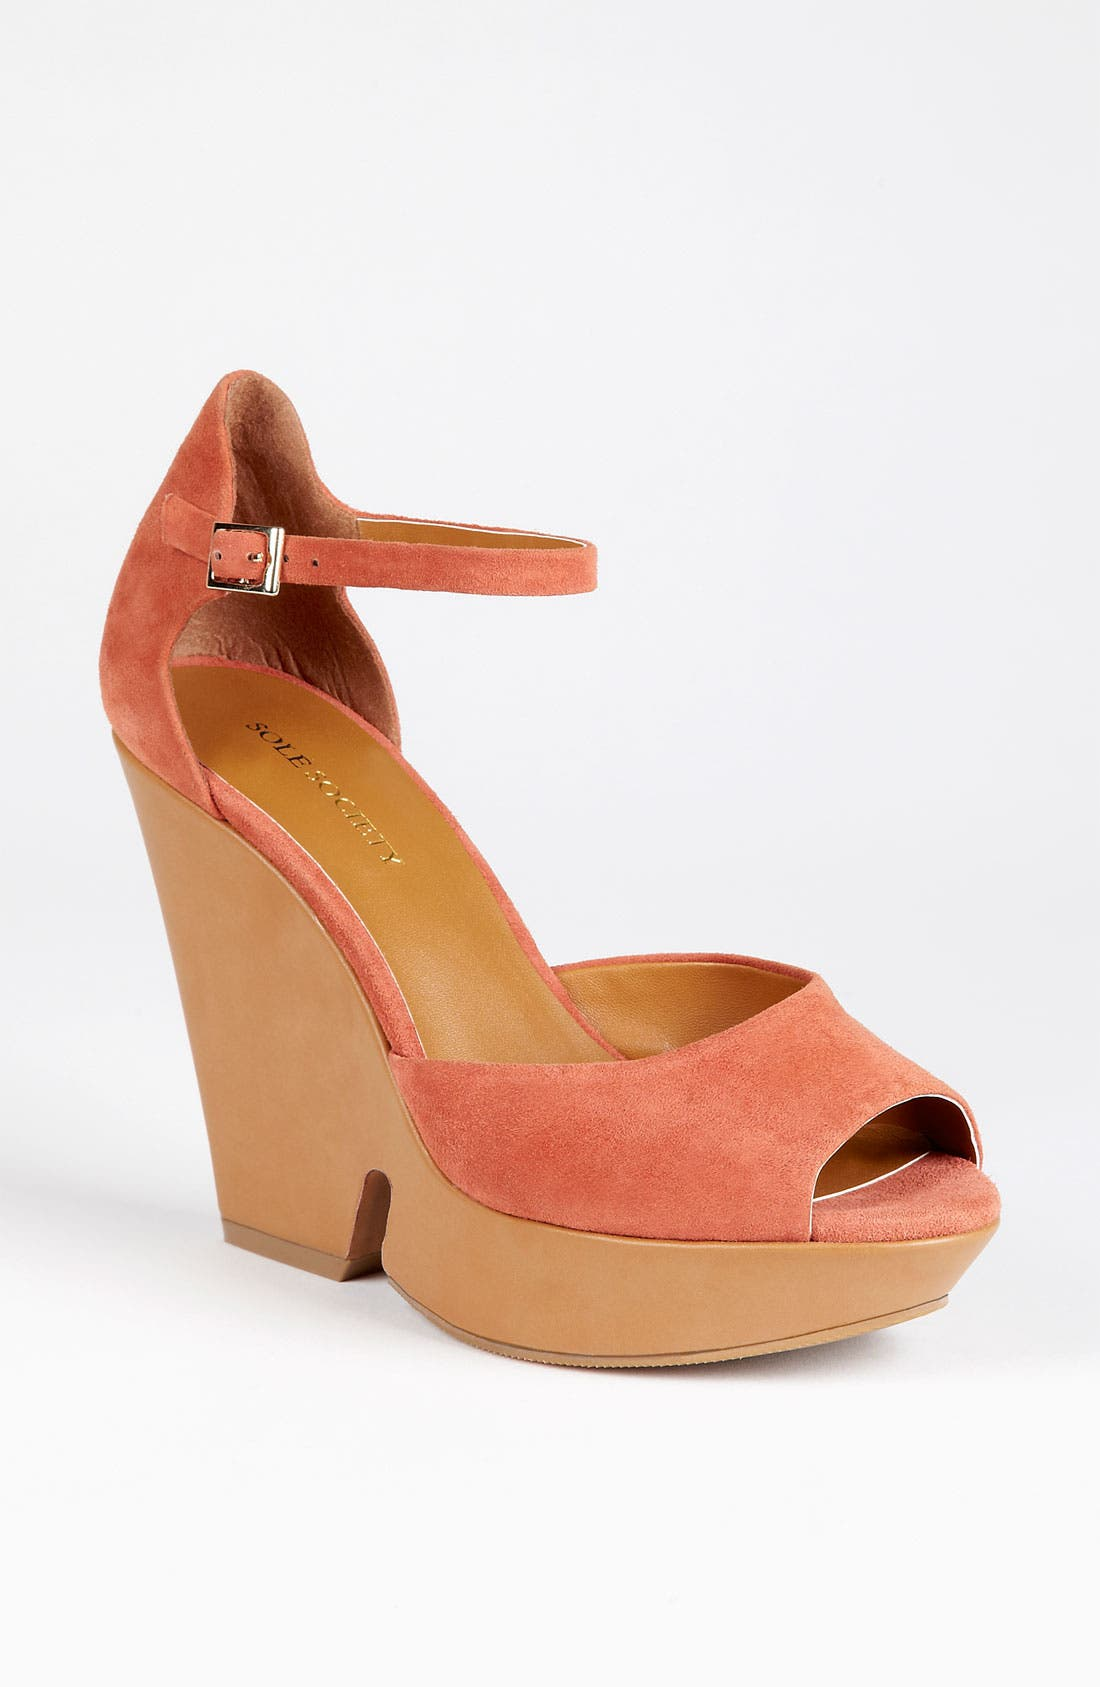 Alternate Image 1 Selected - Sole Society 'Audrey' Sandal